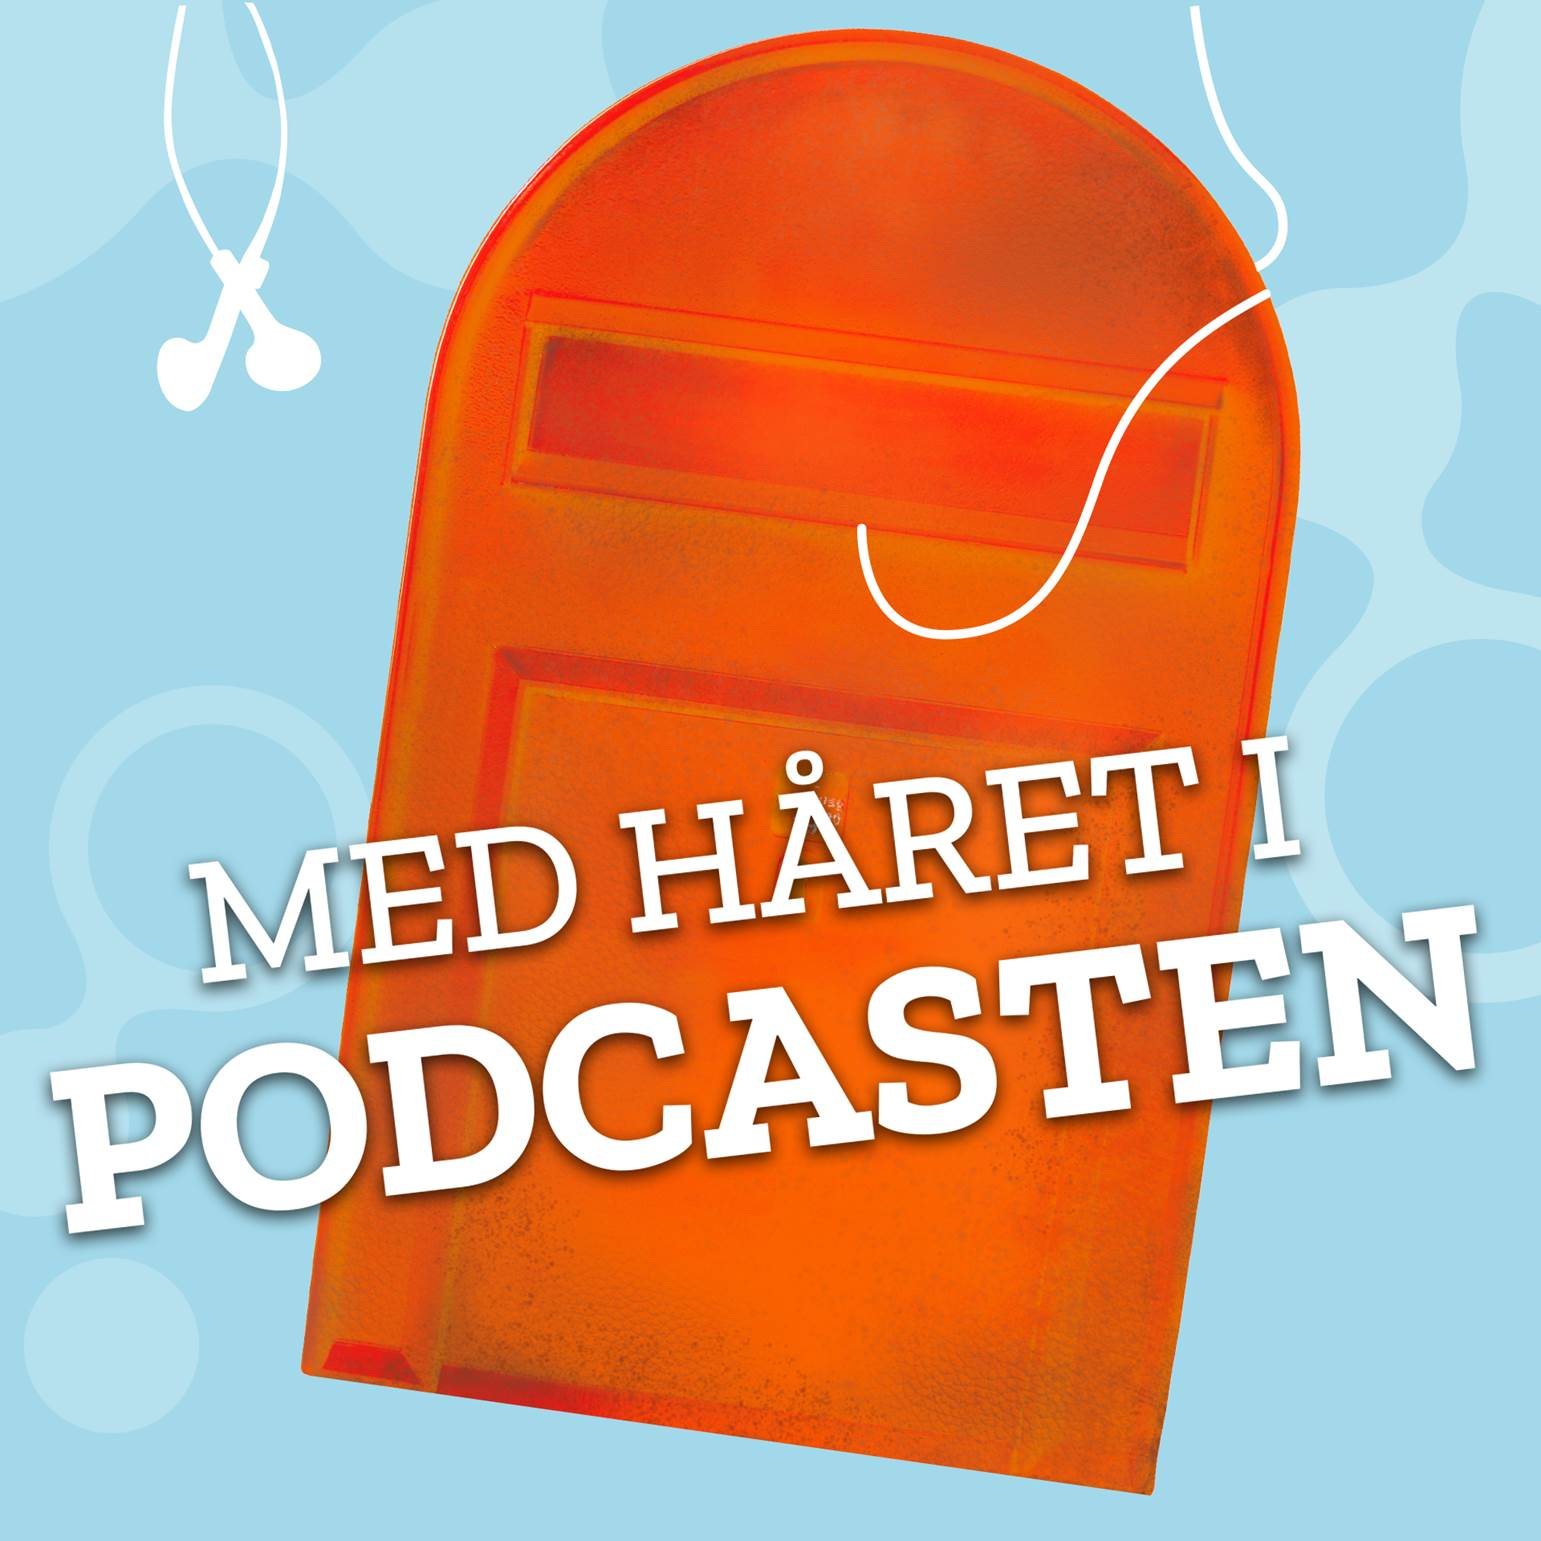 Med håret i podcasten show art